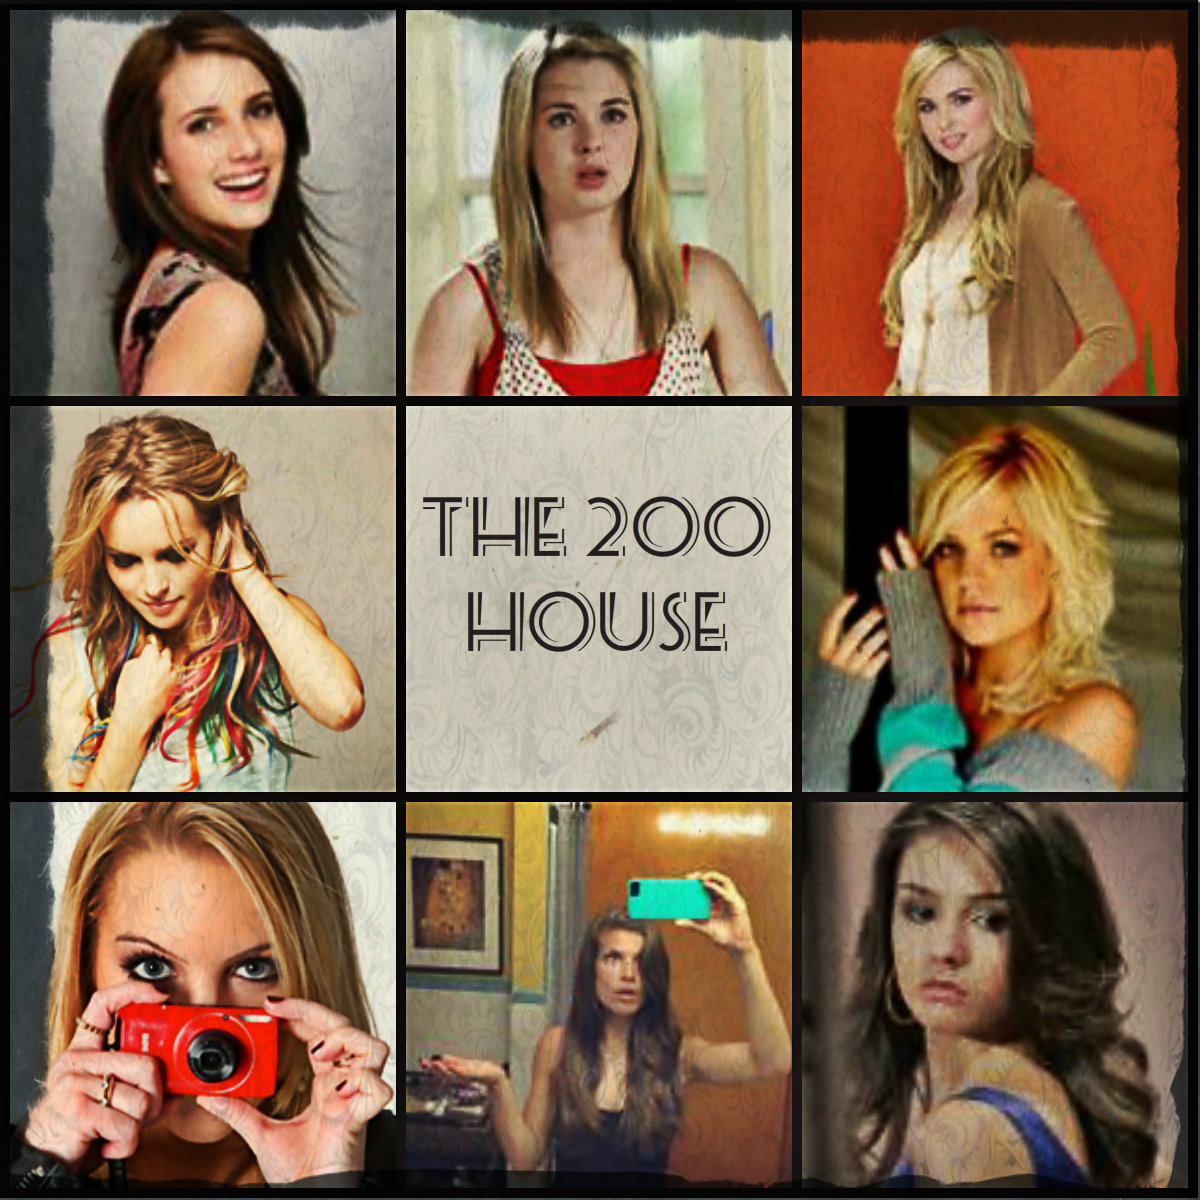 The 200 House (TV Series)